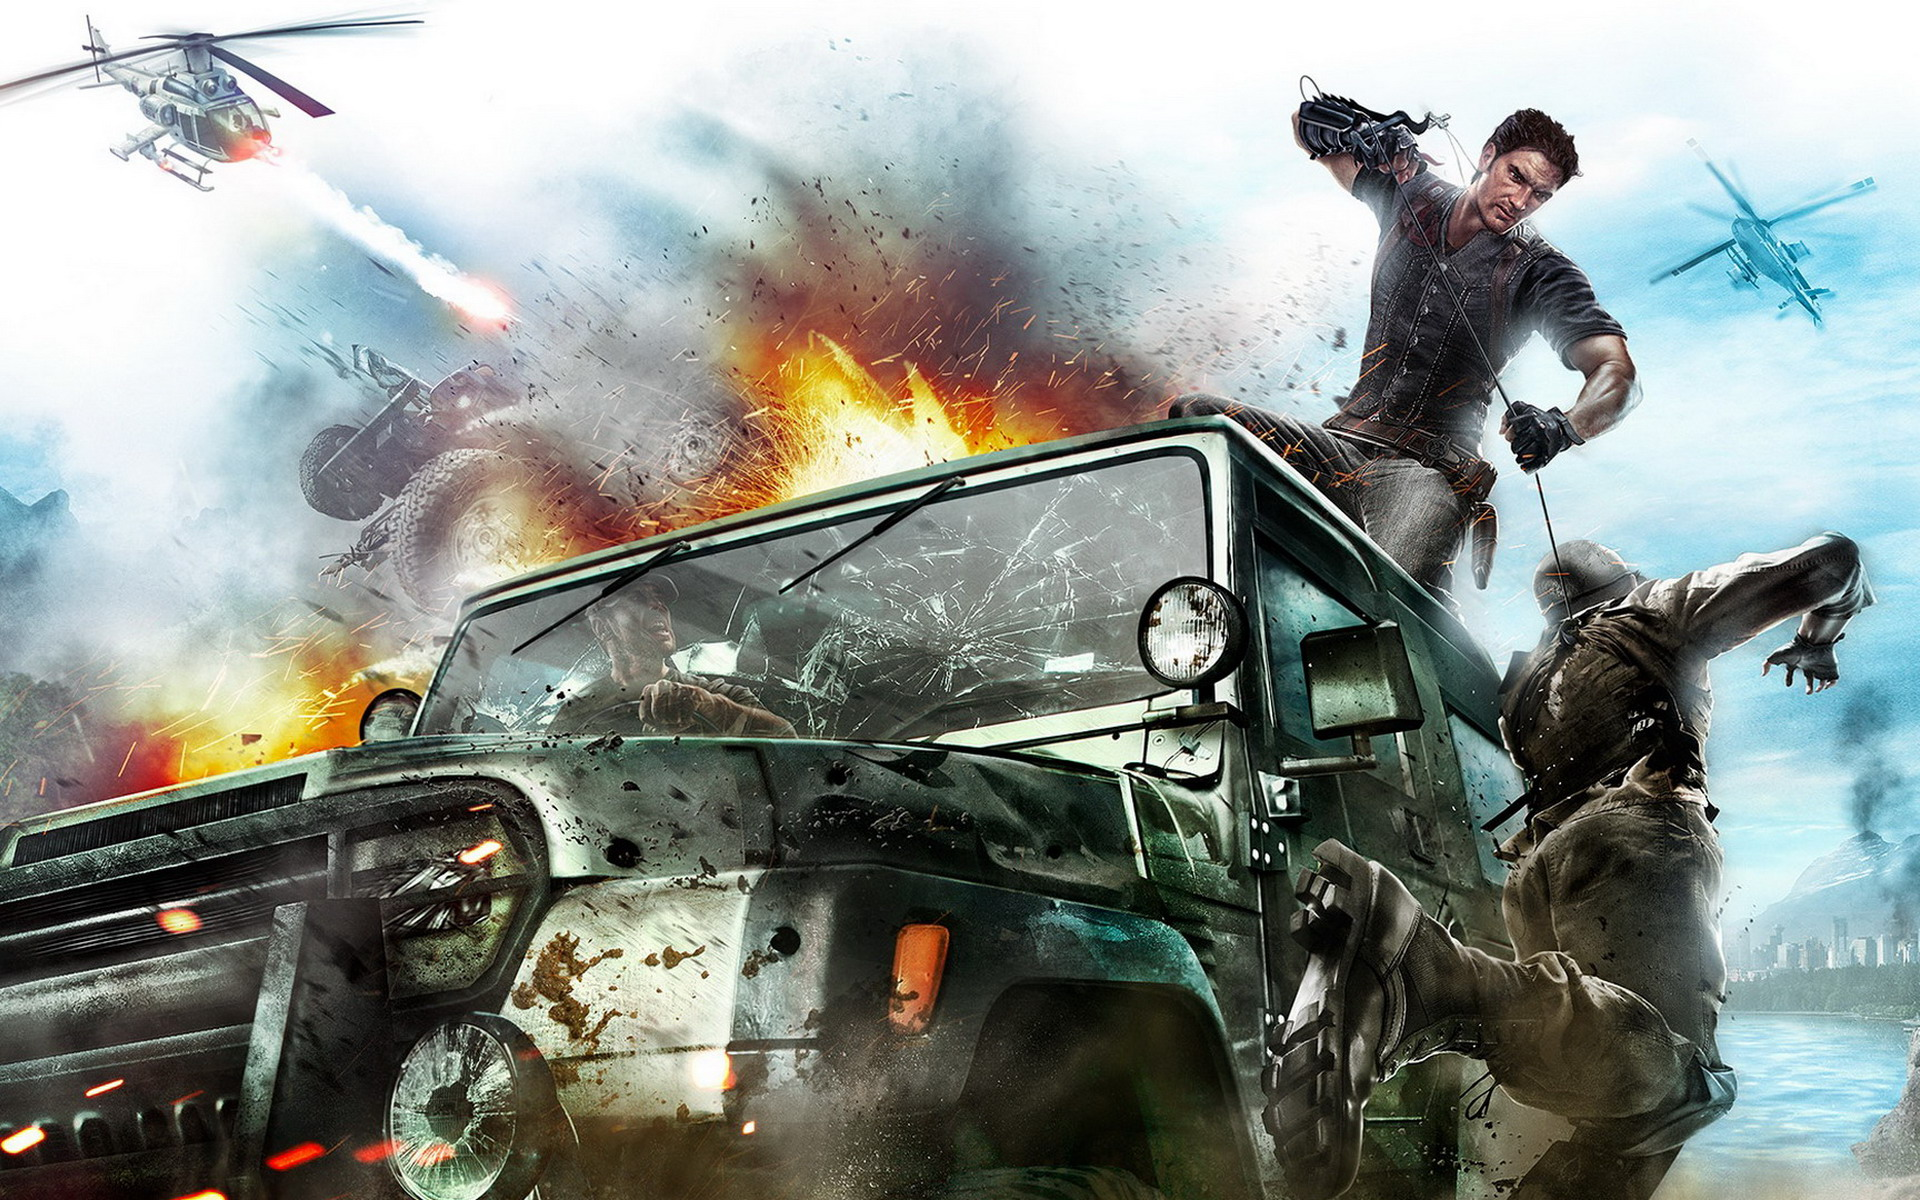 Just Cause 2 Multiplayer Mod Releasing On Steam – The Koalition